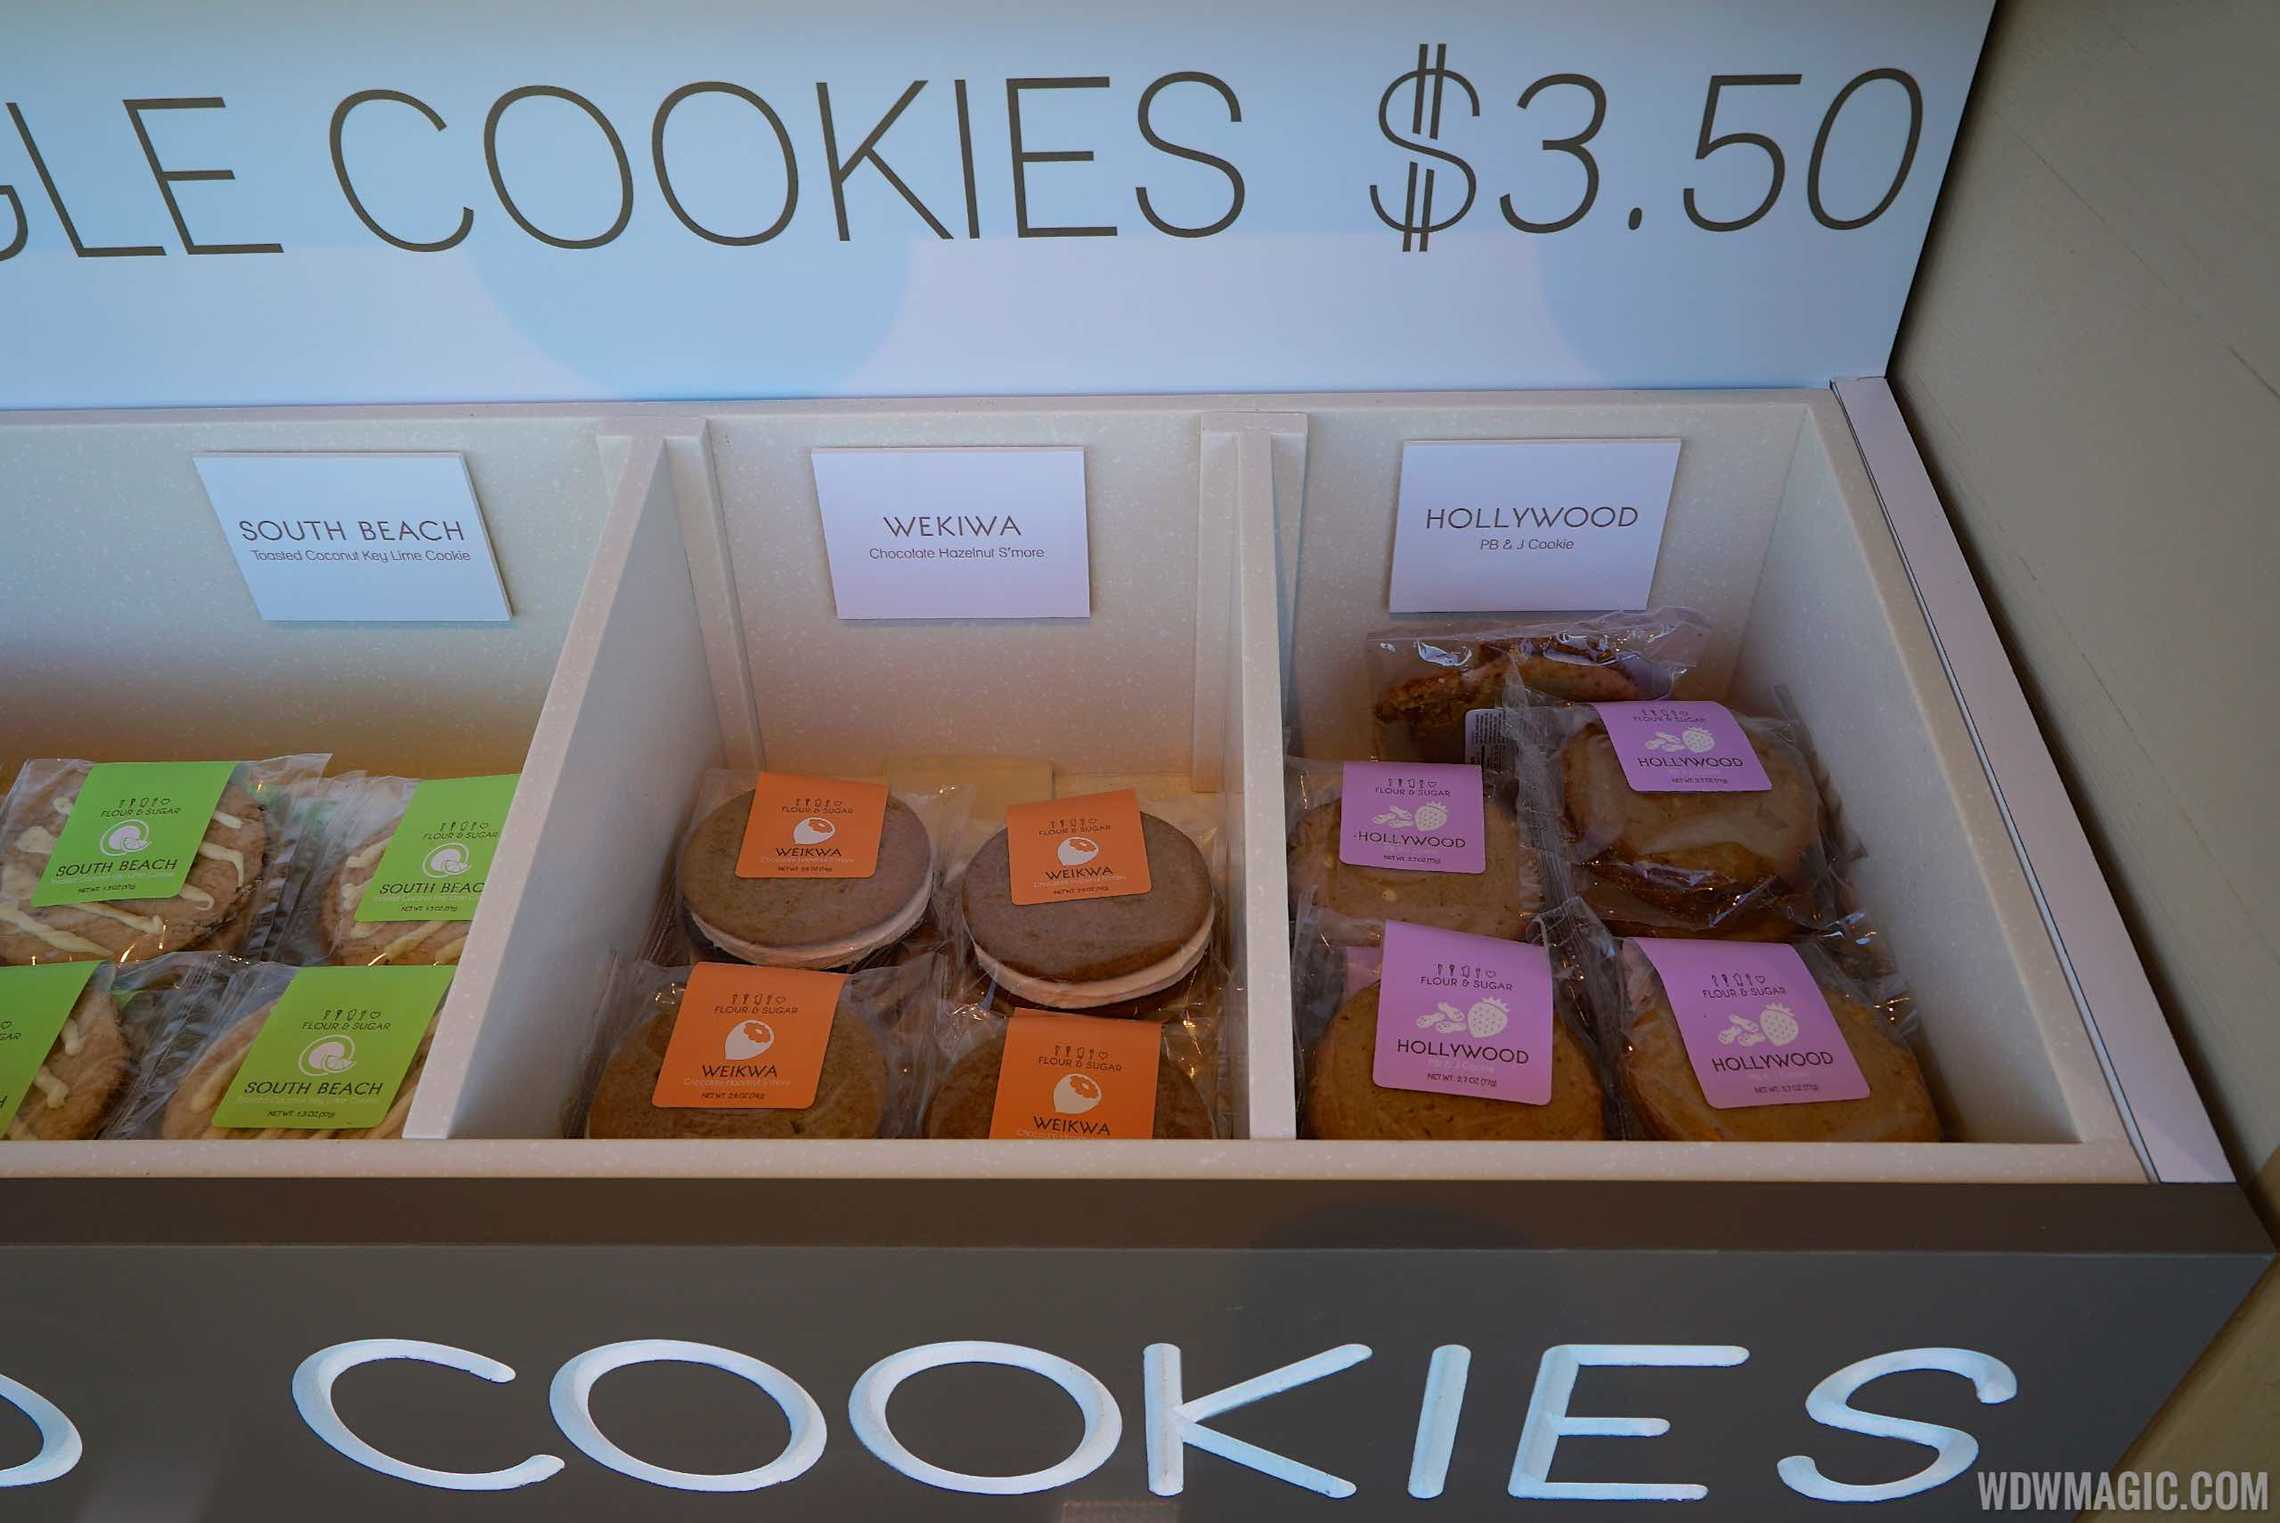 Causeway Kiosk - Flour and Sugar cookies